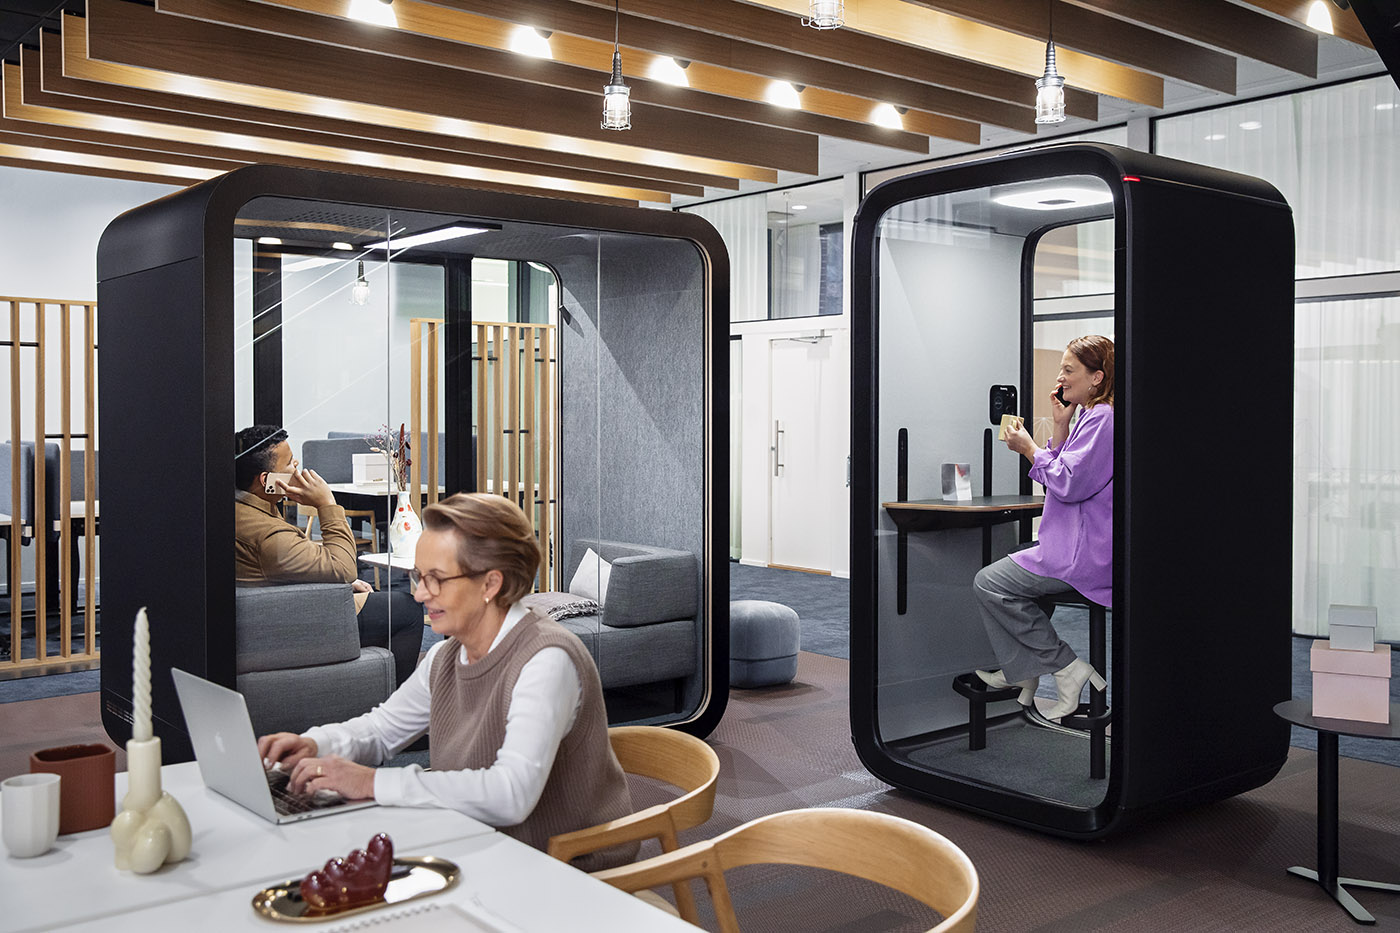 Telephone booth for offices. Design and technology to prepare for the growing demand for video conferencing